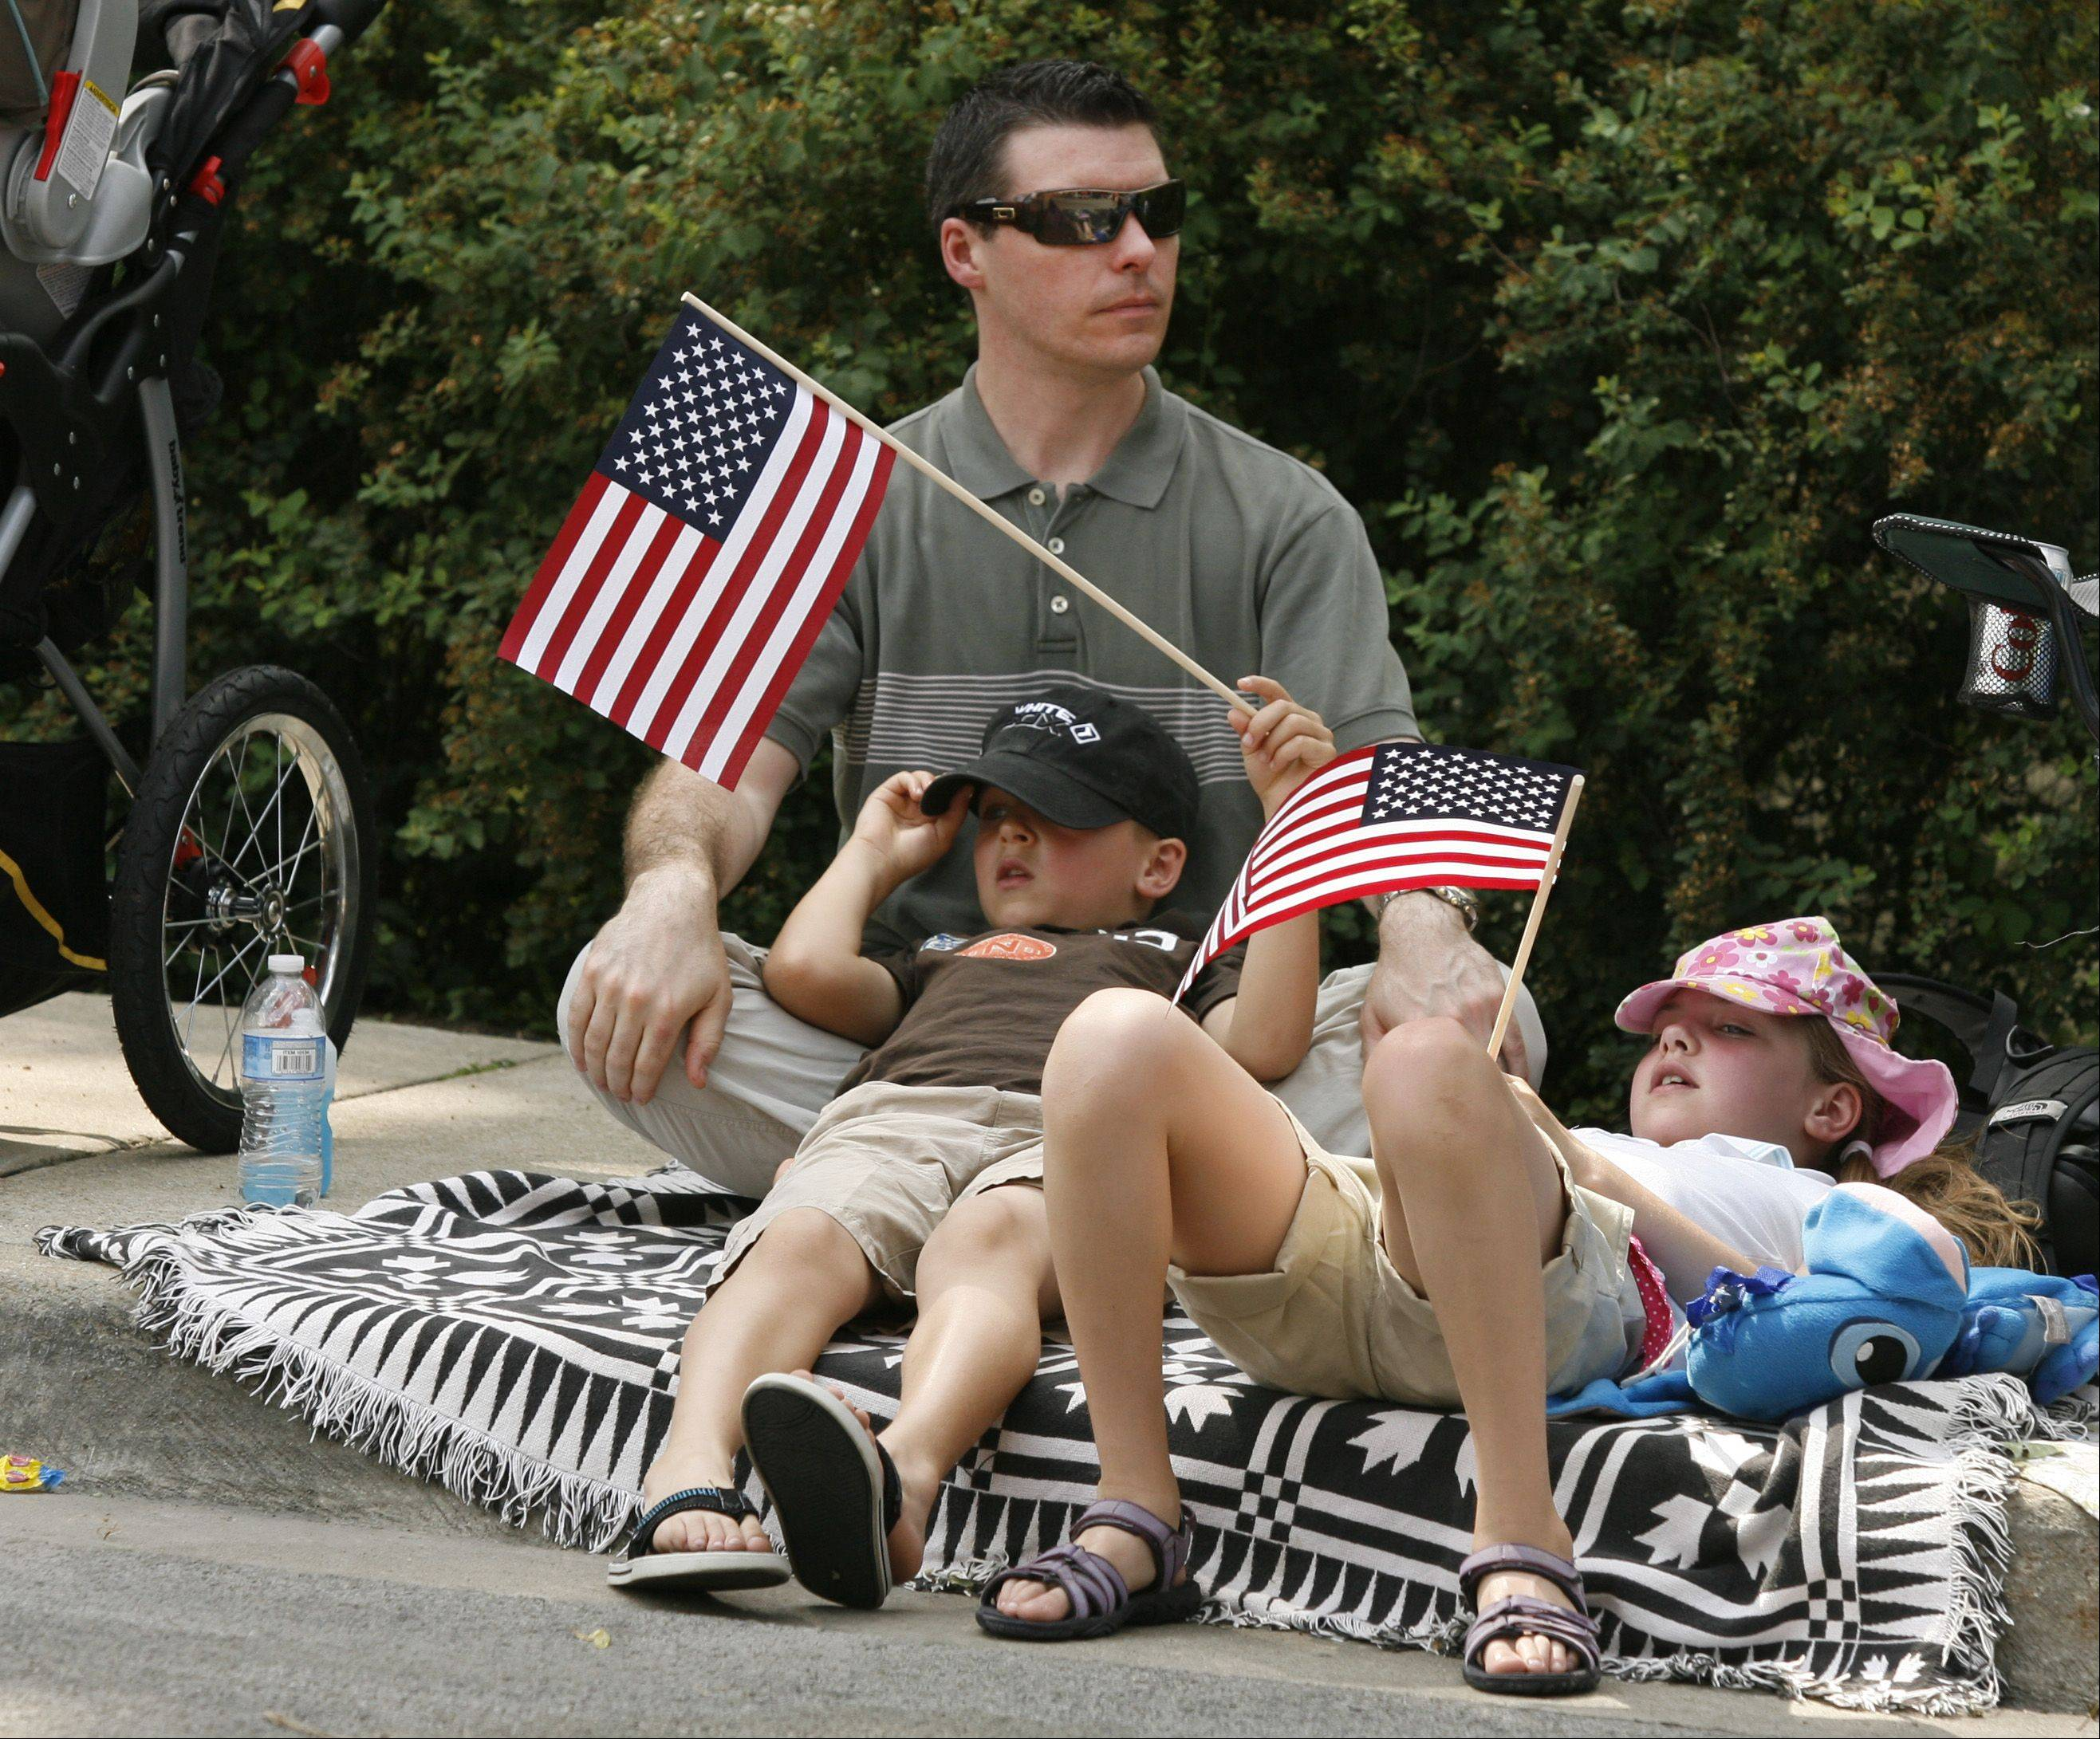 Jason Witte of Naperville relaxes in the shade with his son James, 6, and Charlotte, 8, before the Naperville Memorial Day parade.